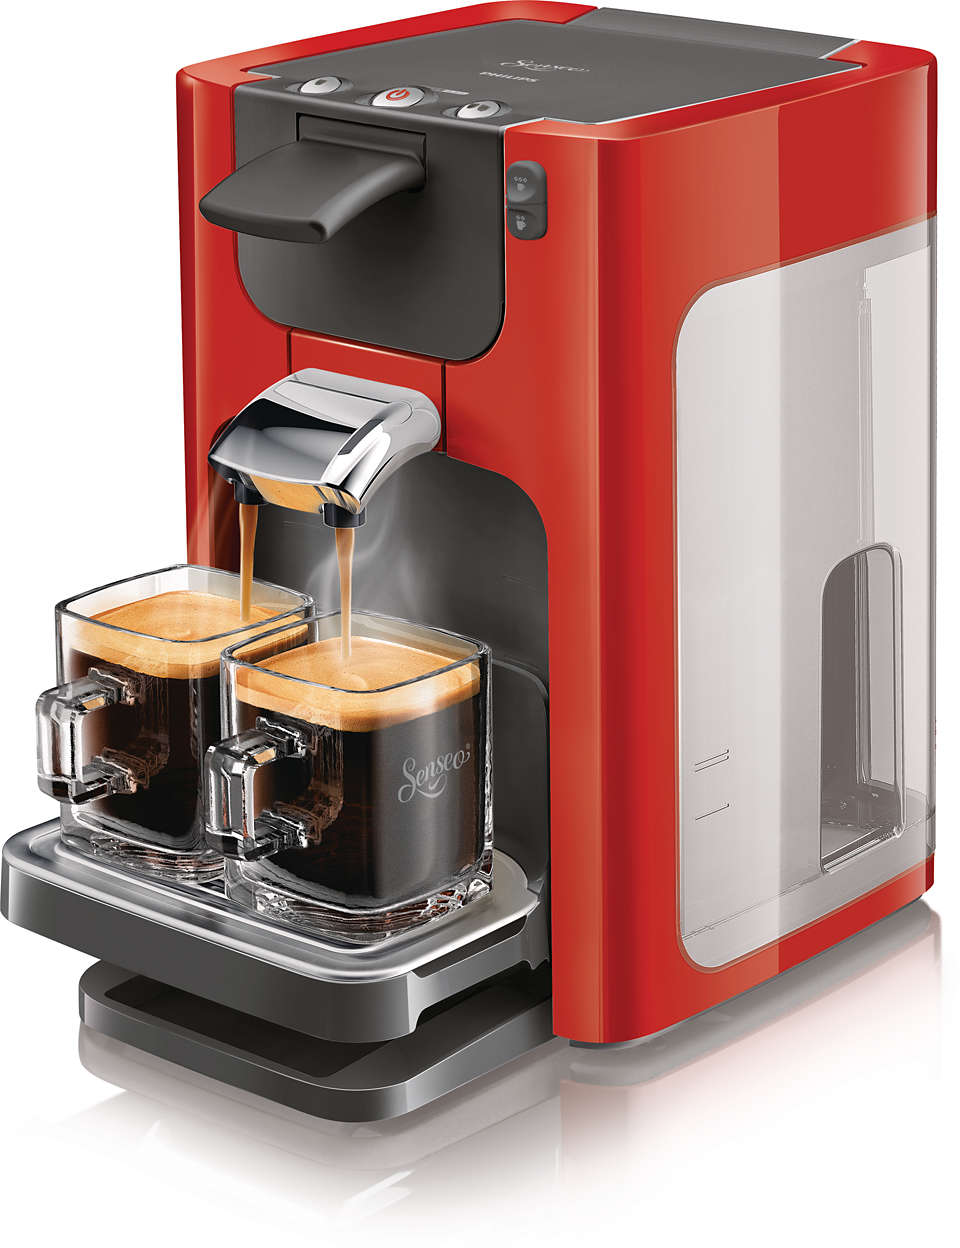 Delicious coffee at a touch, in a modern design